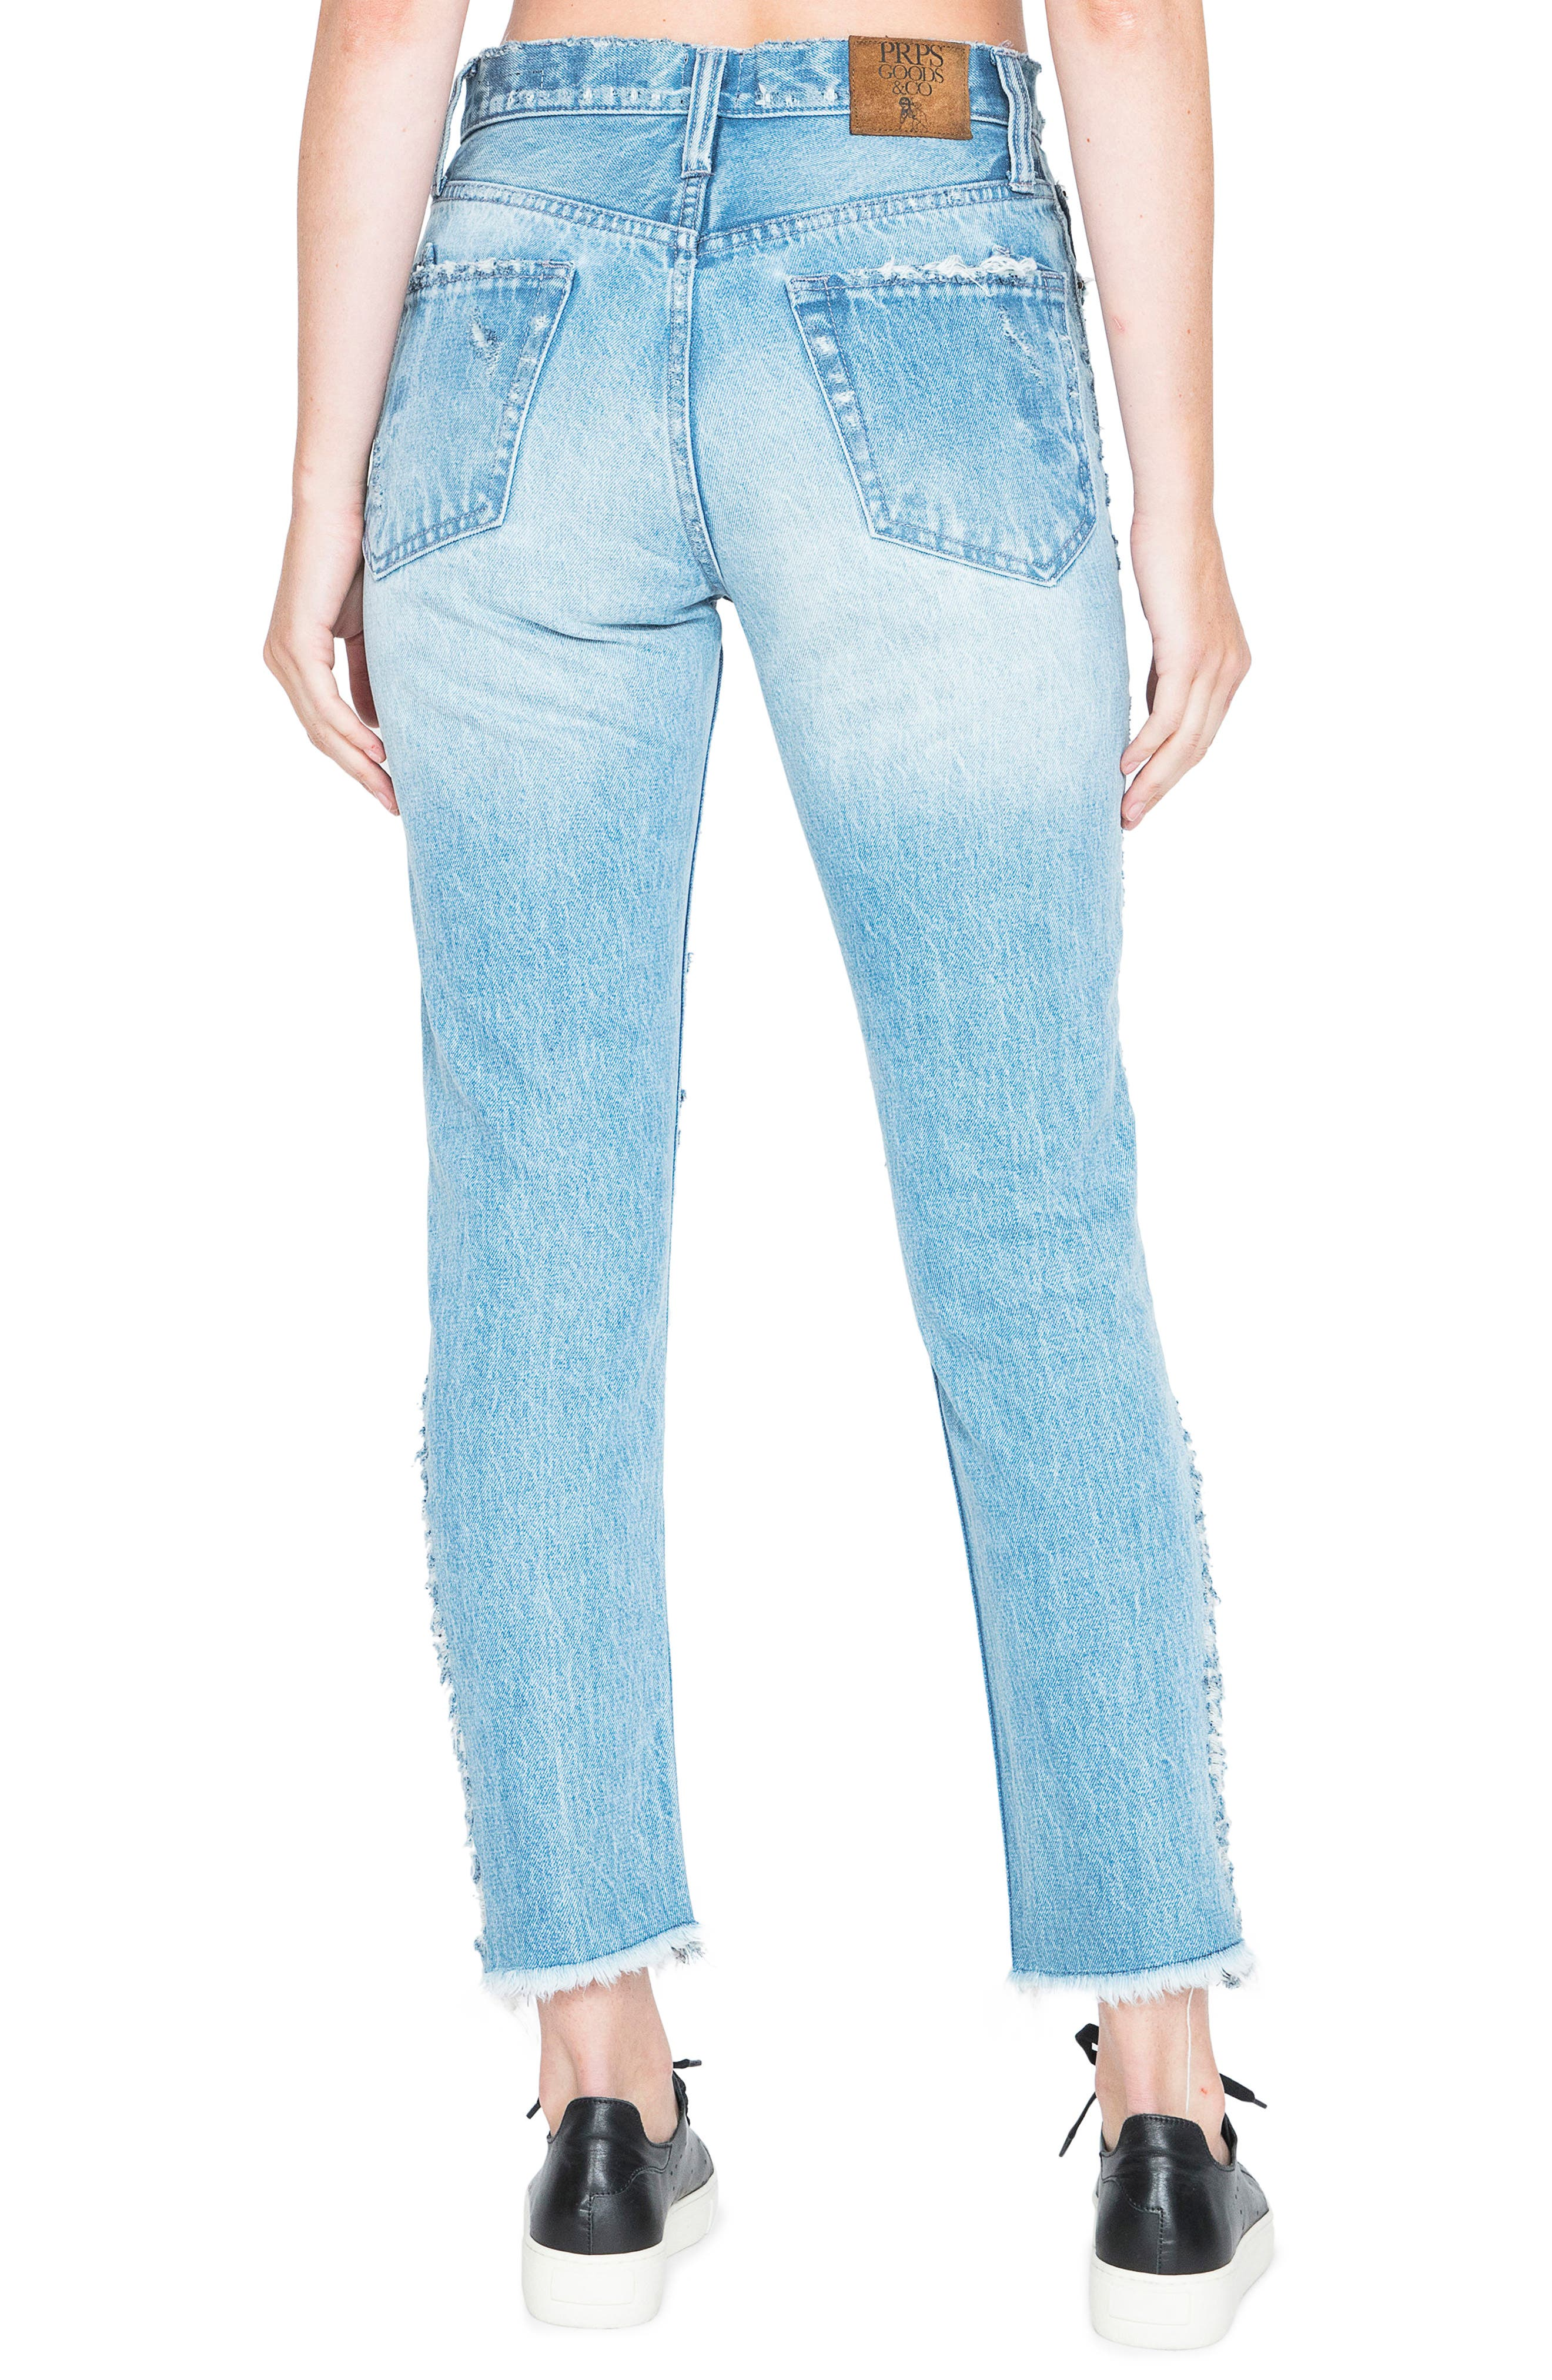 AMX Side Fray High Waist Ankle Jeans,                             Alternate thumbnail 2, color,                             426